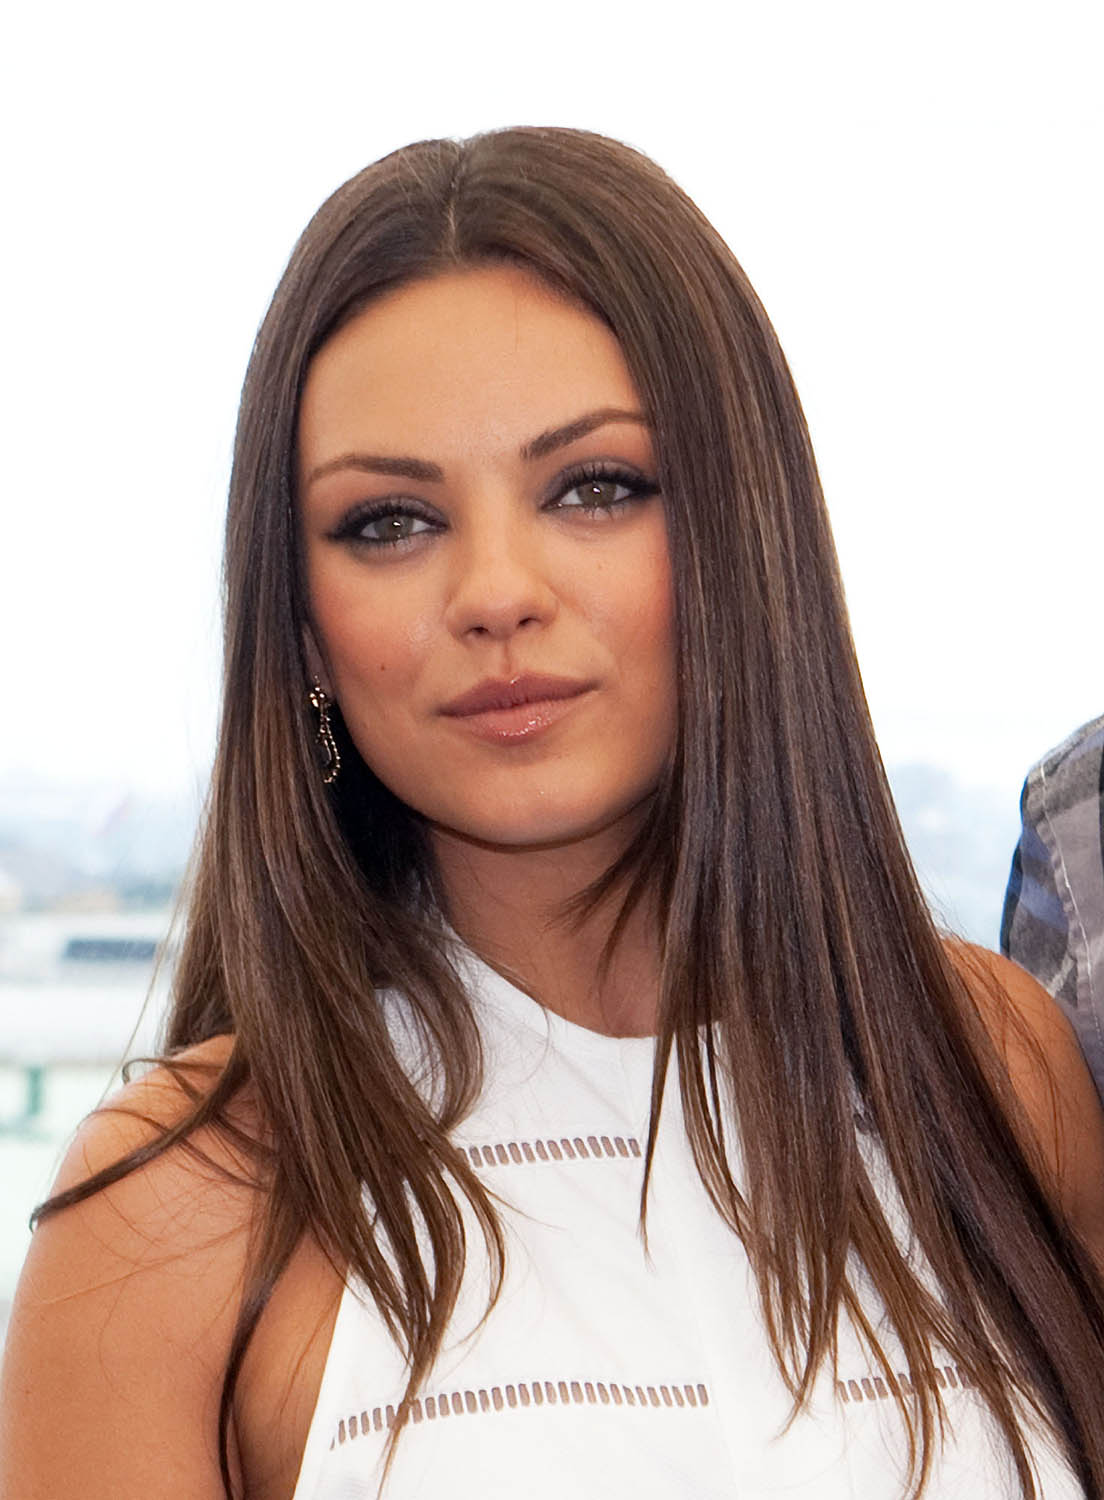 Mila-Kunis-Friends-with-Benefits-Photocall-in-Moscow-July-27-mila-kunis-24093974-1104-1500.jpg